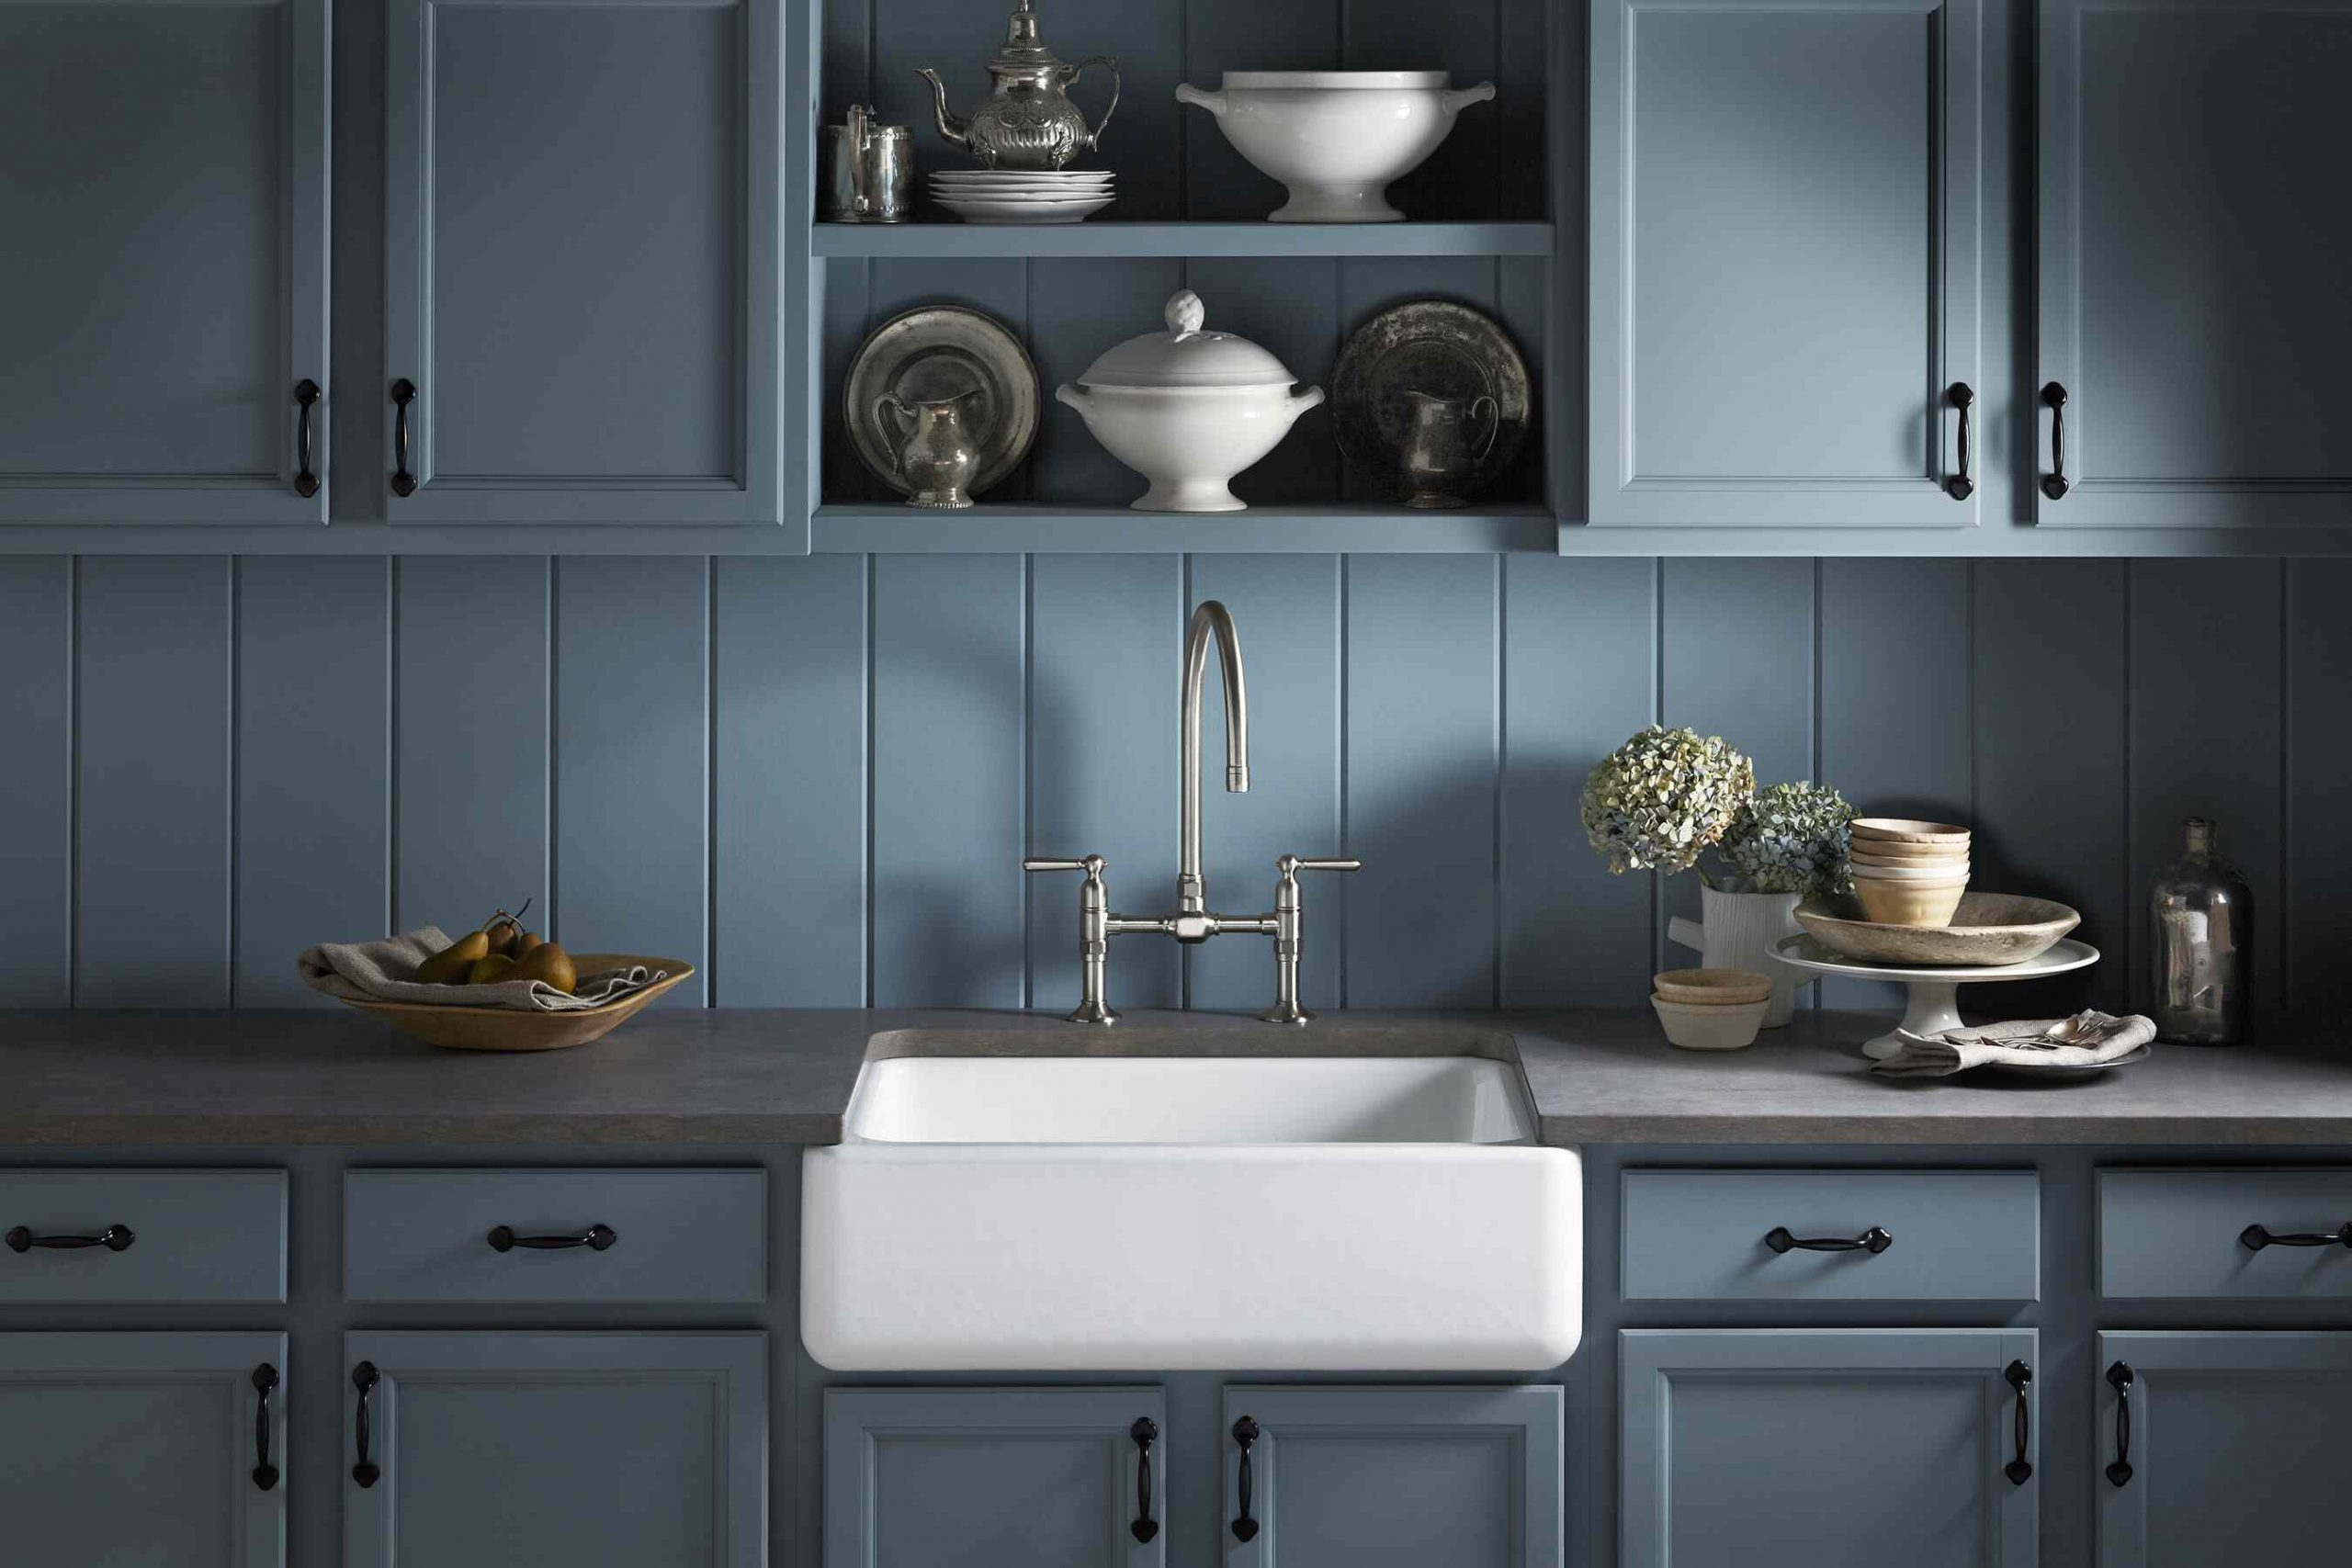 Best Kitchen Sink Options, stainless steel kitchen sinks, and countertop materials